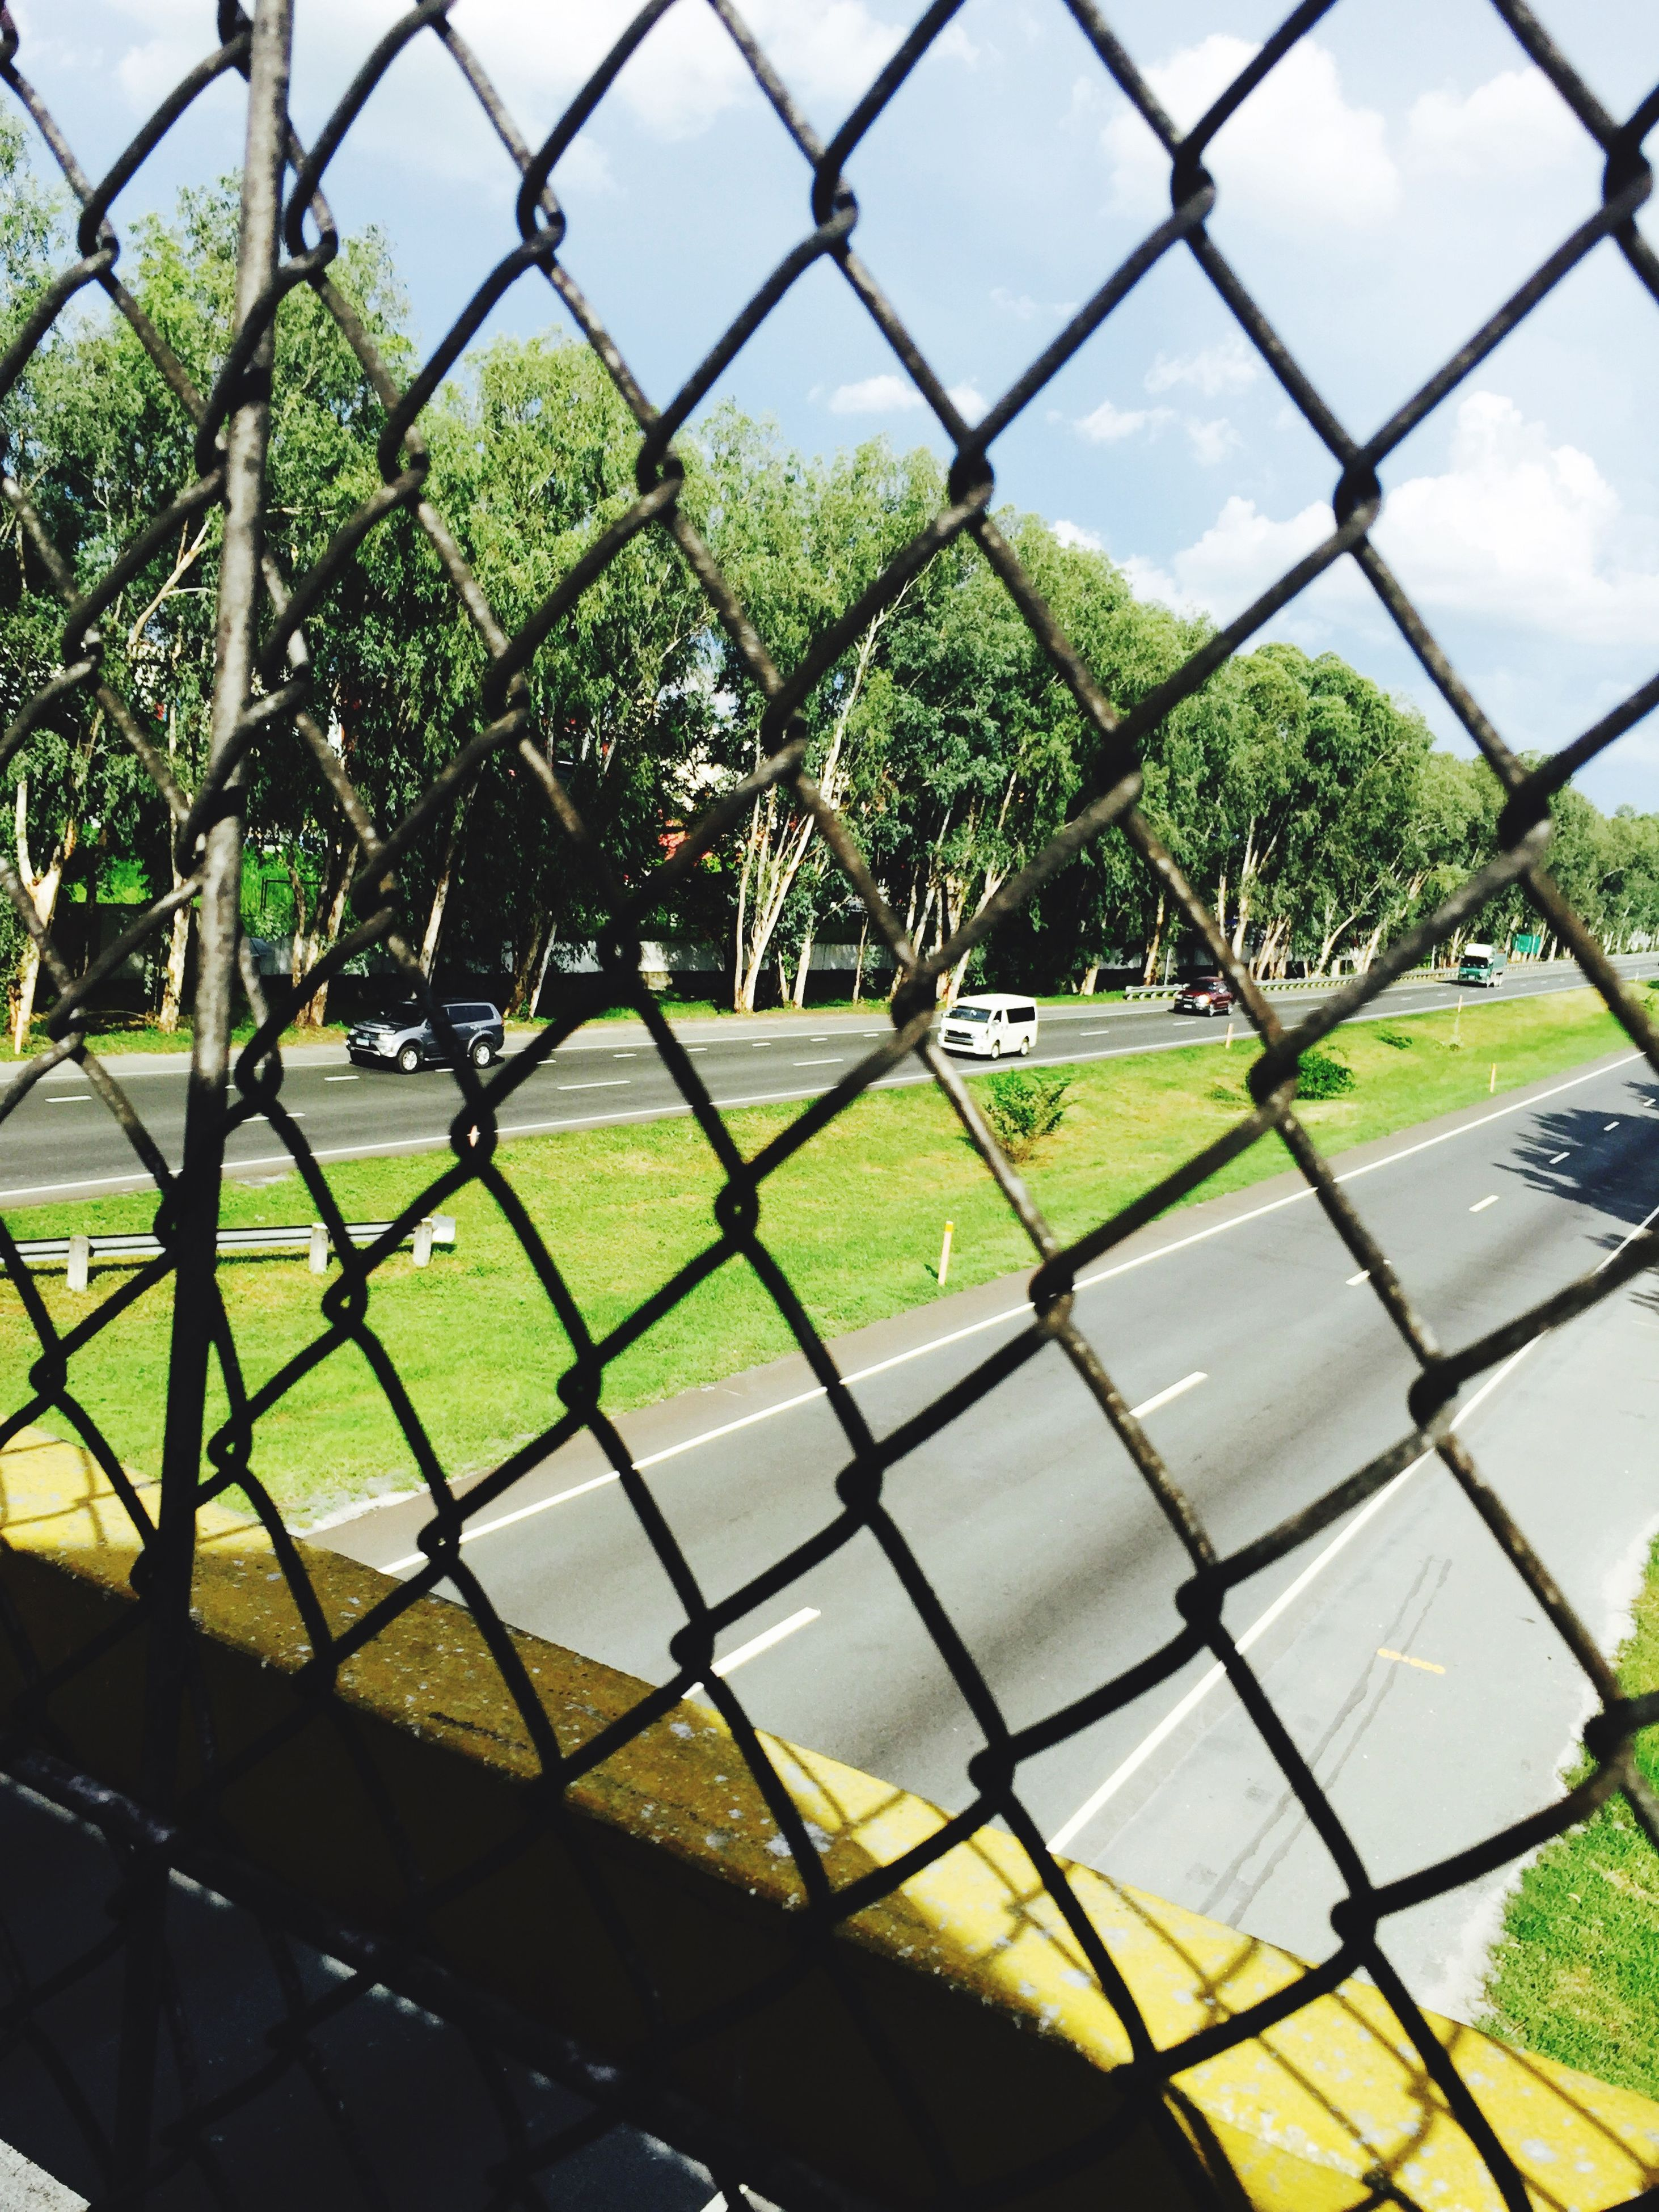 fence, chainlink fence, protection, green color, safety, metal, grass, security, tree, focus on foreground, field, growth, day, nature, park - man made space, sport, outdoors, sky, close-up, no people